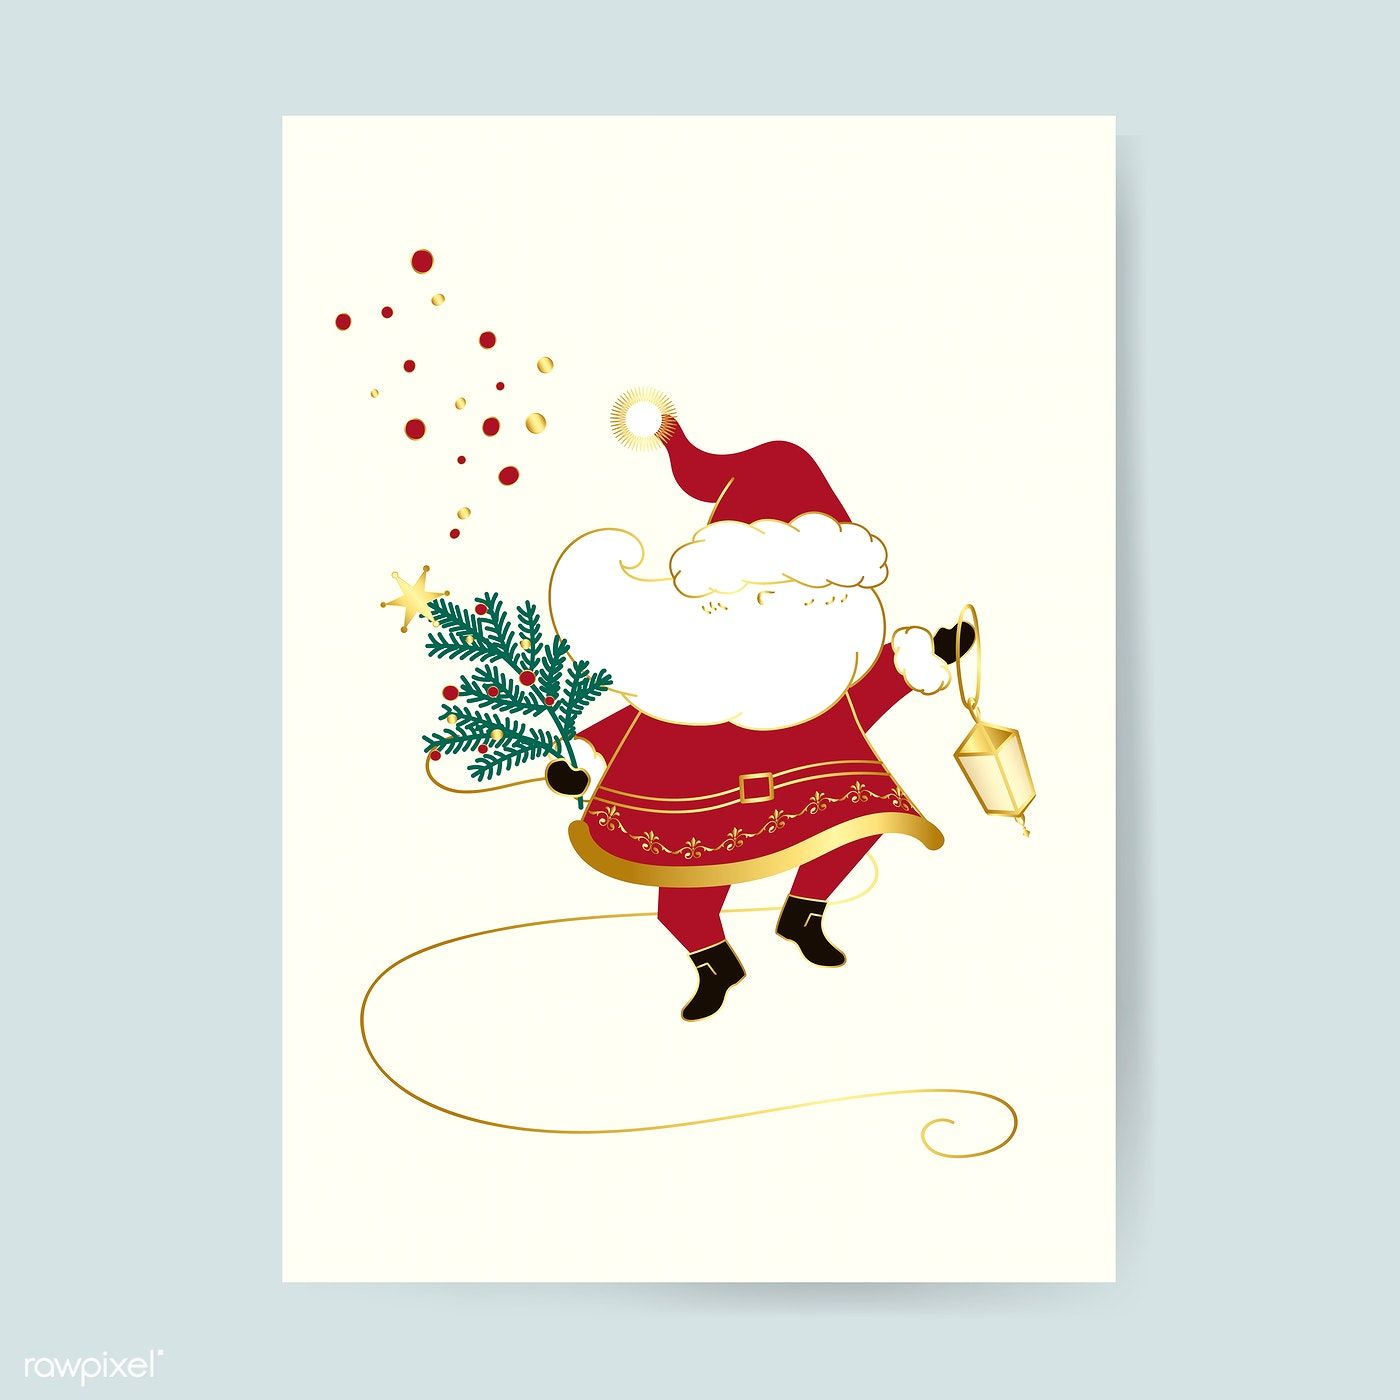 Santa Claus Christmas Card Vector Free Image By Rawpixel Com Busbus Merry Christmas Card Design Christmas Cards Free Reindeer Card